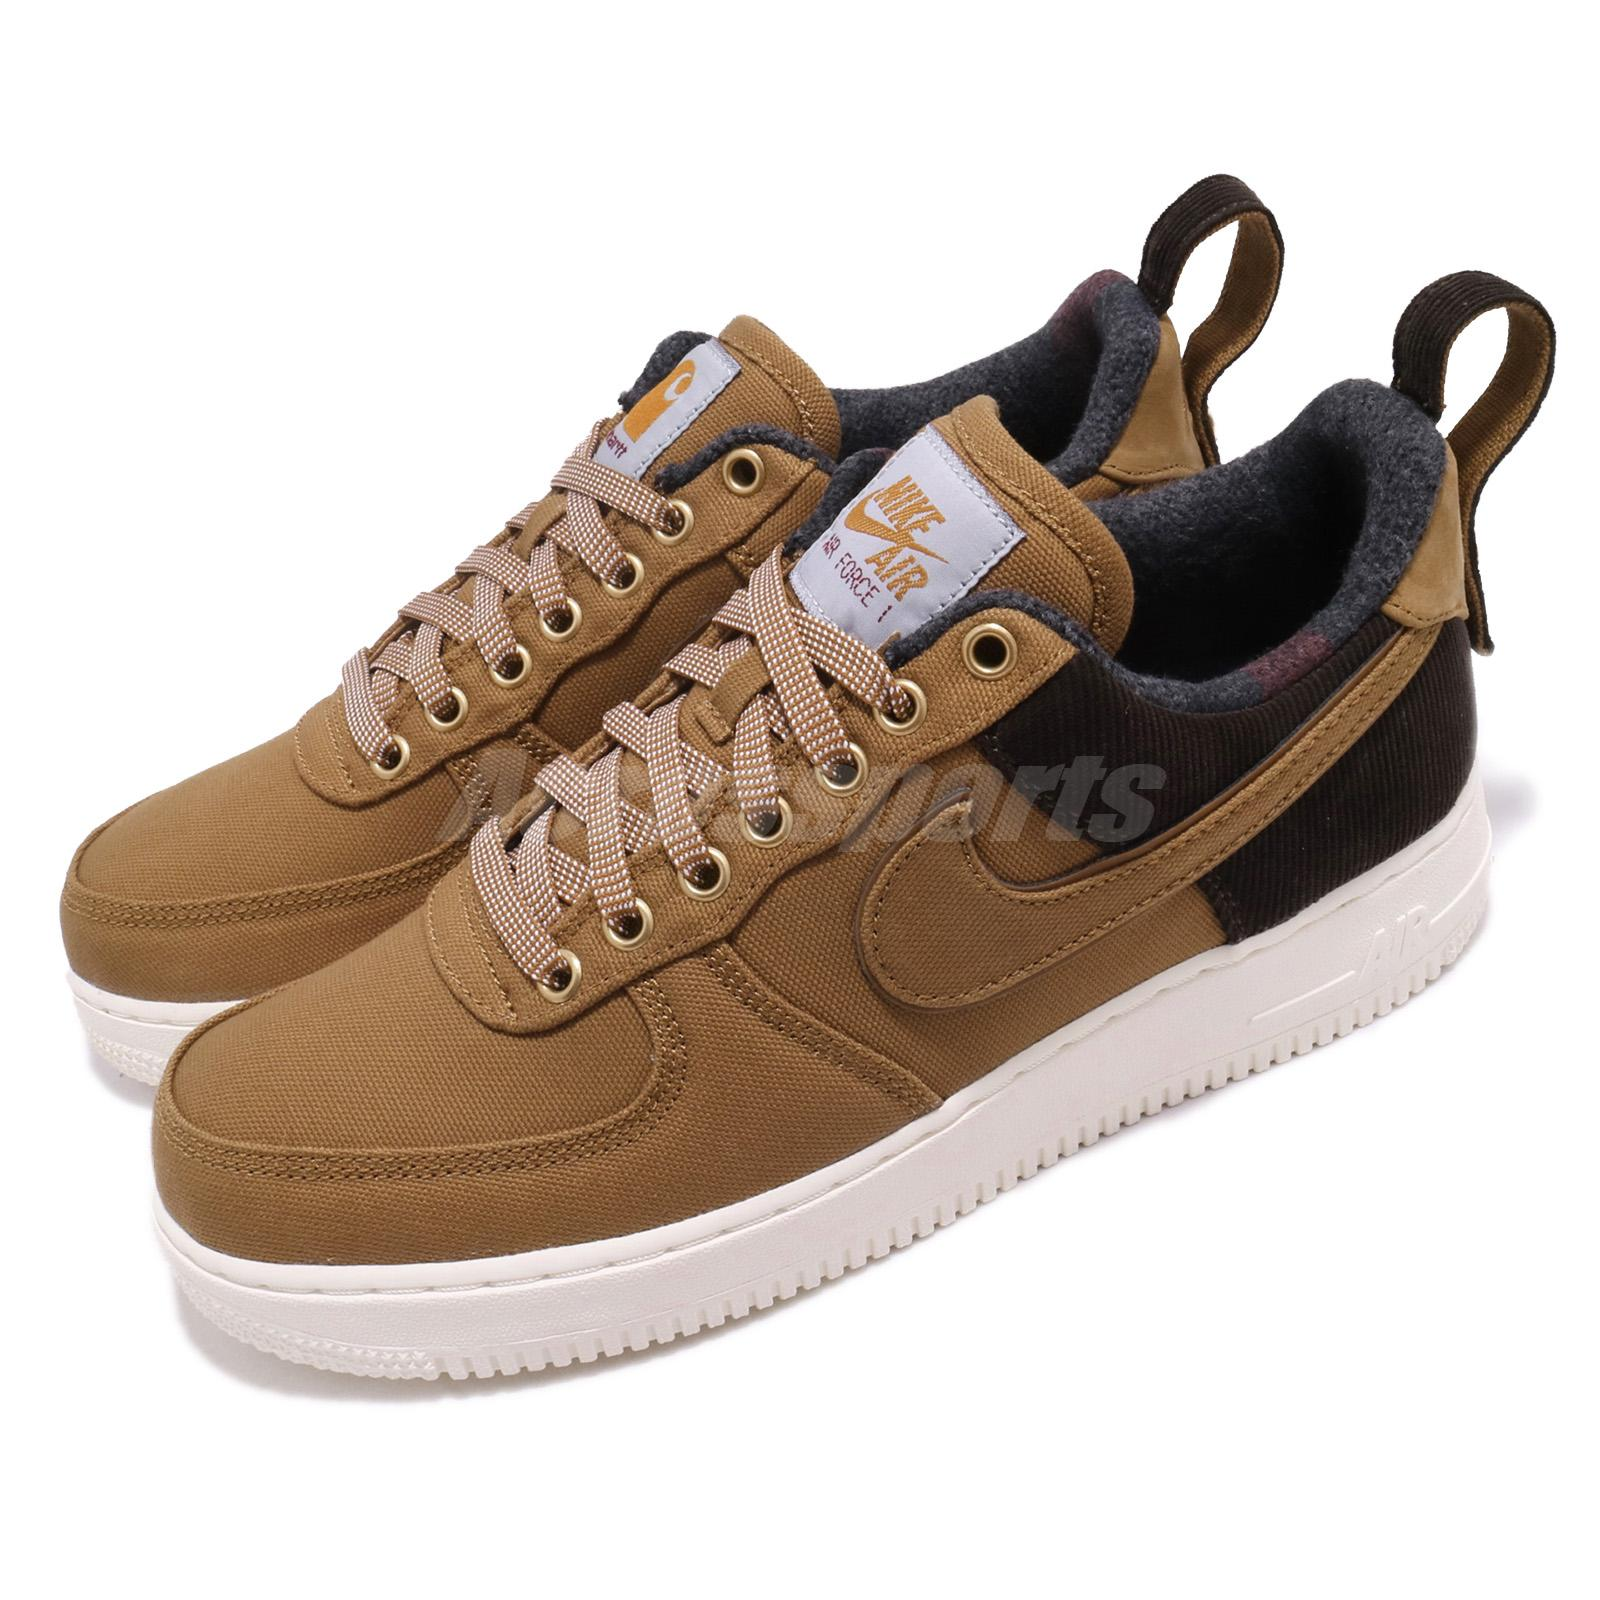 Brown Nike Air Force 1 Low Nike Air Easy Glow Light For Kids With ... f6a66005b